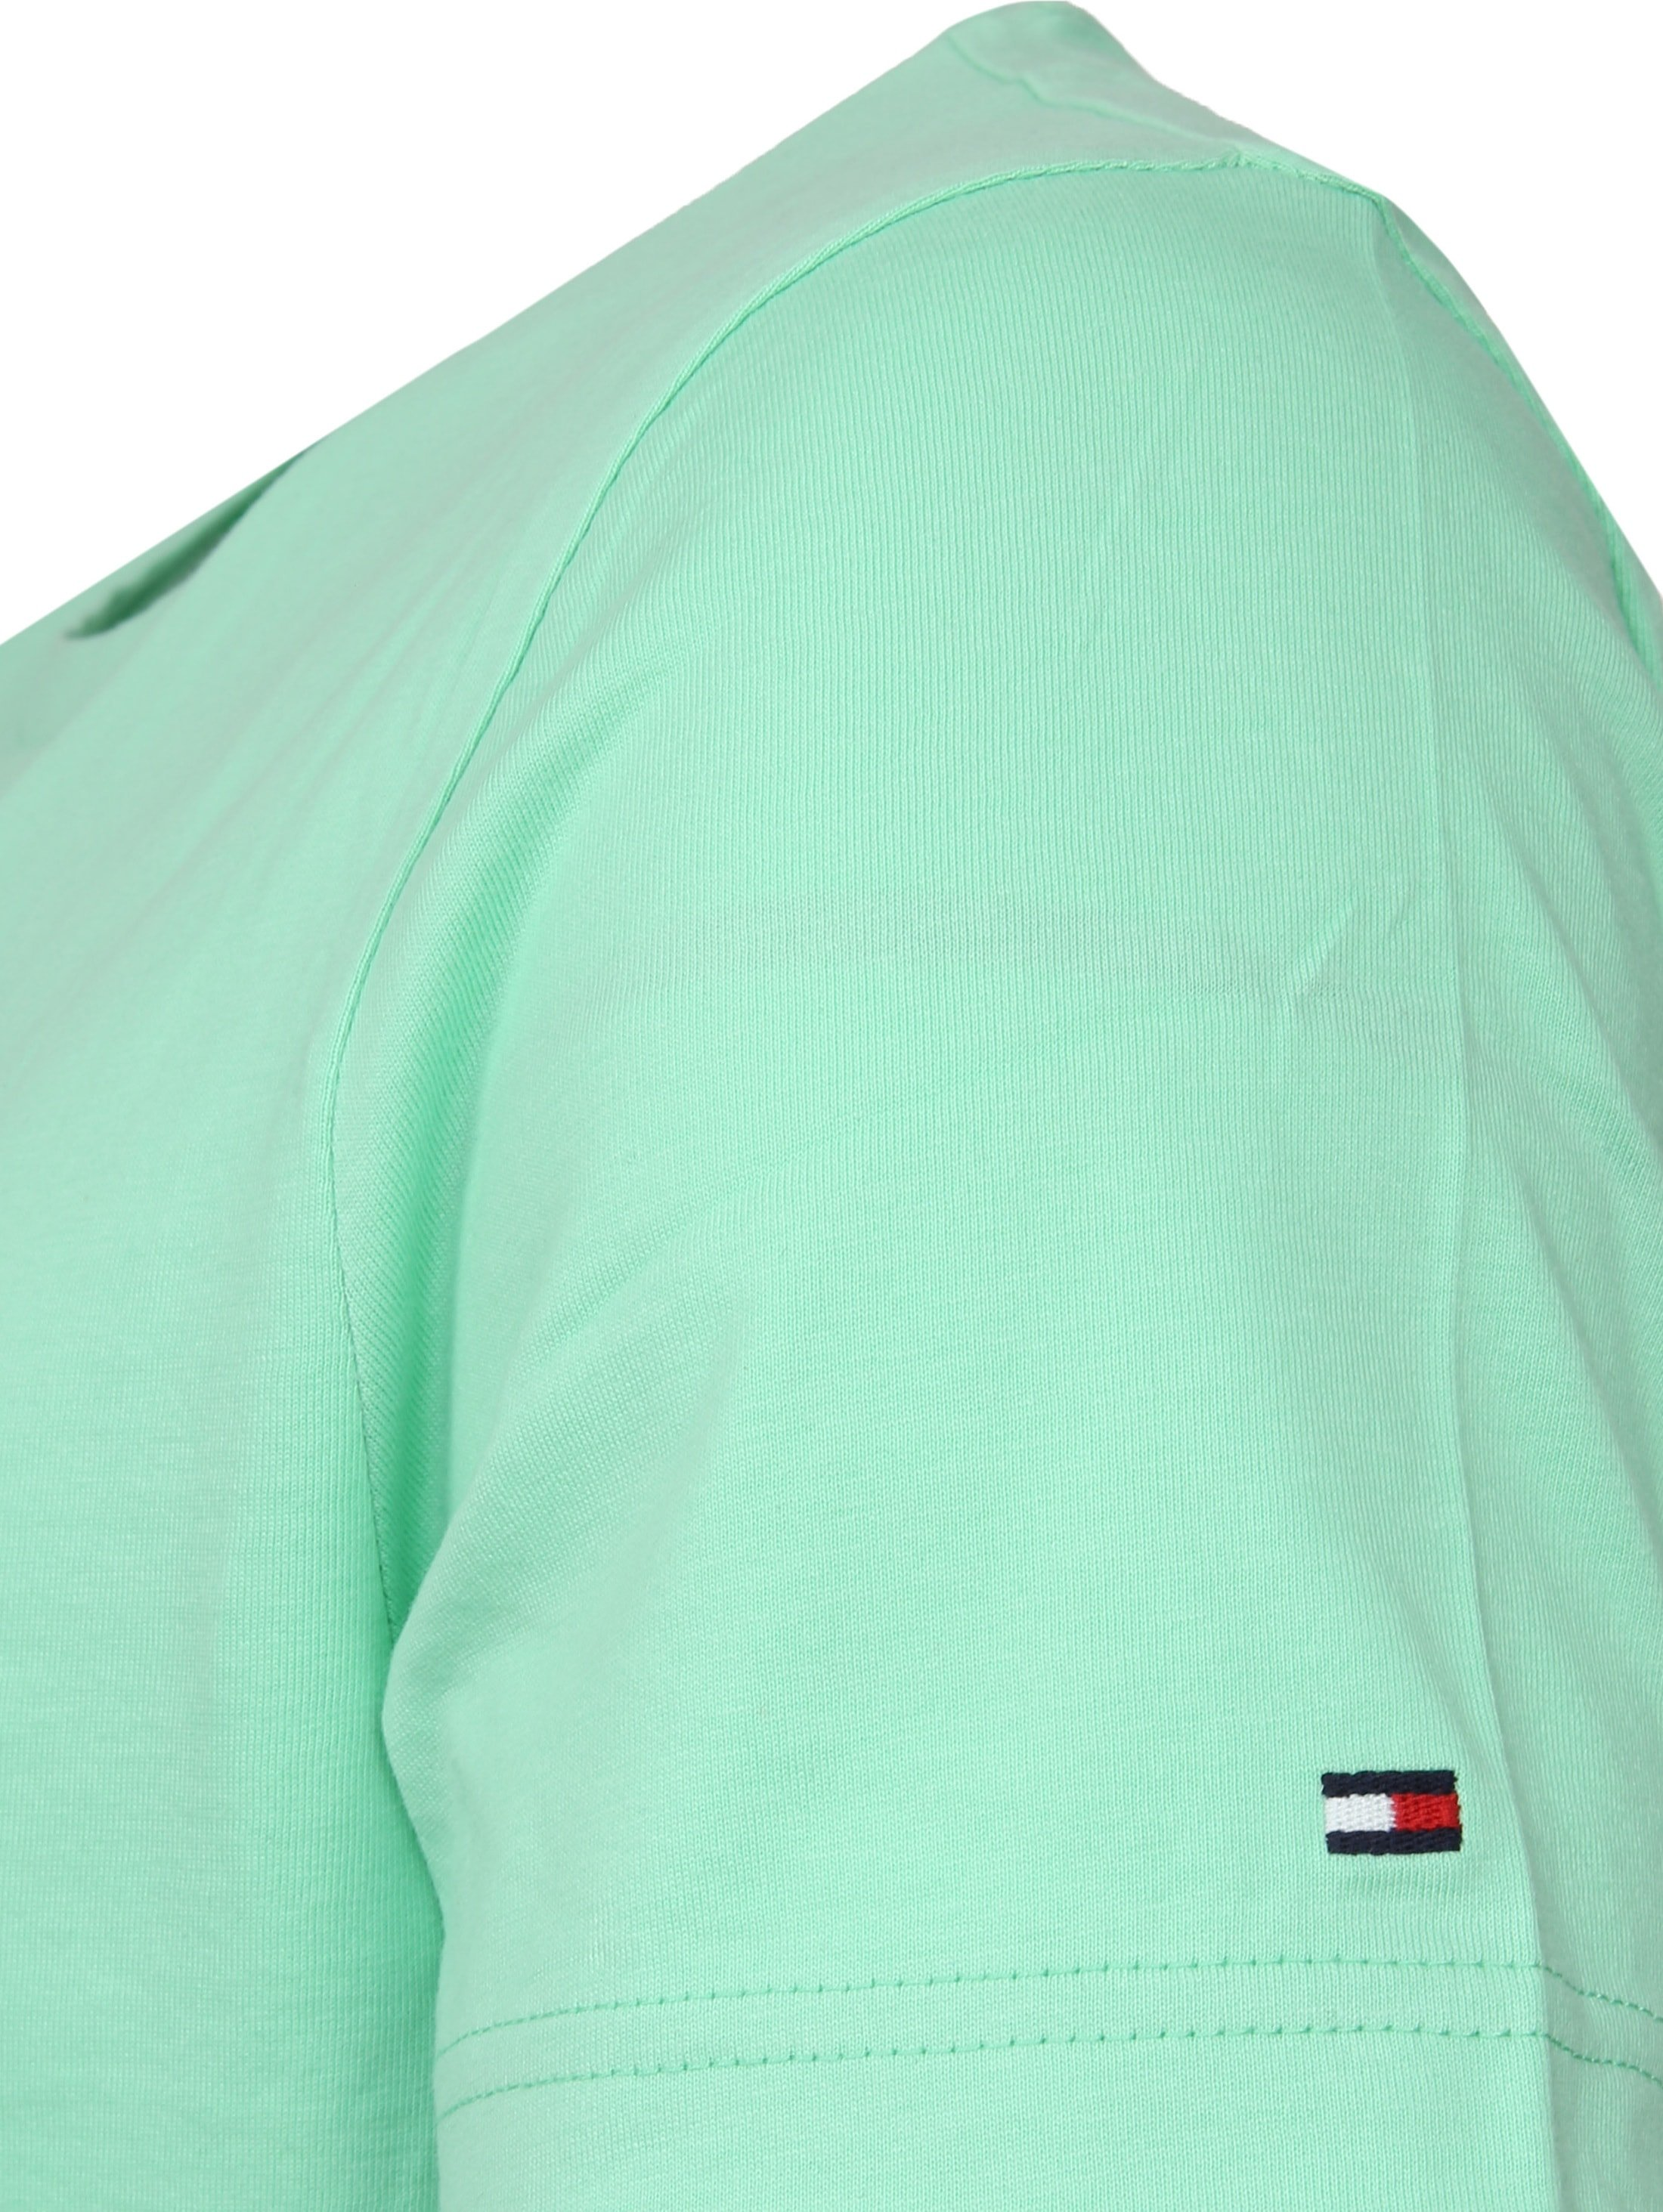 Tommy Hilfiger T-shirt Box Print Light Green foto 3